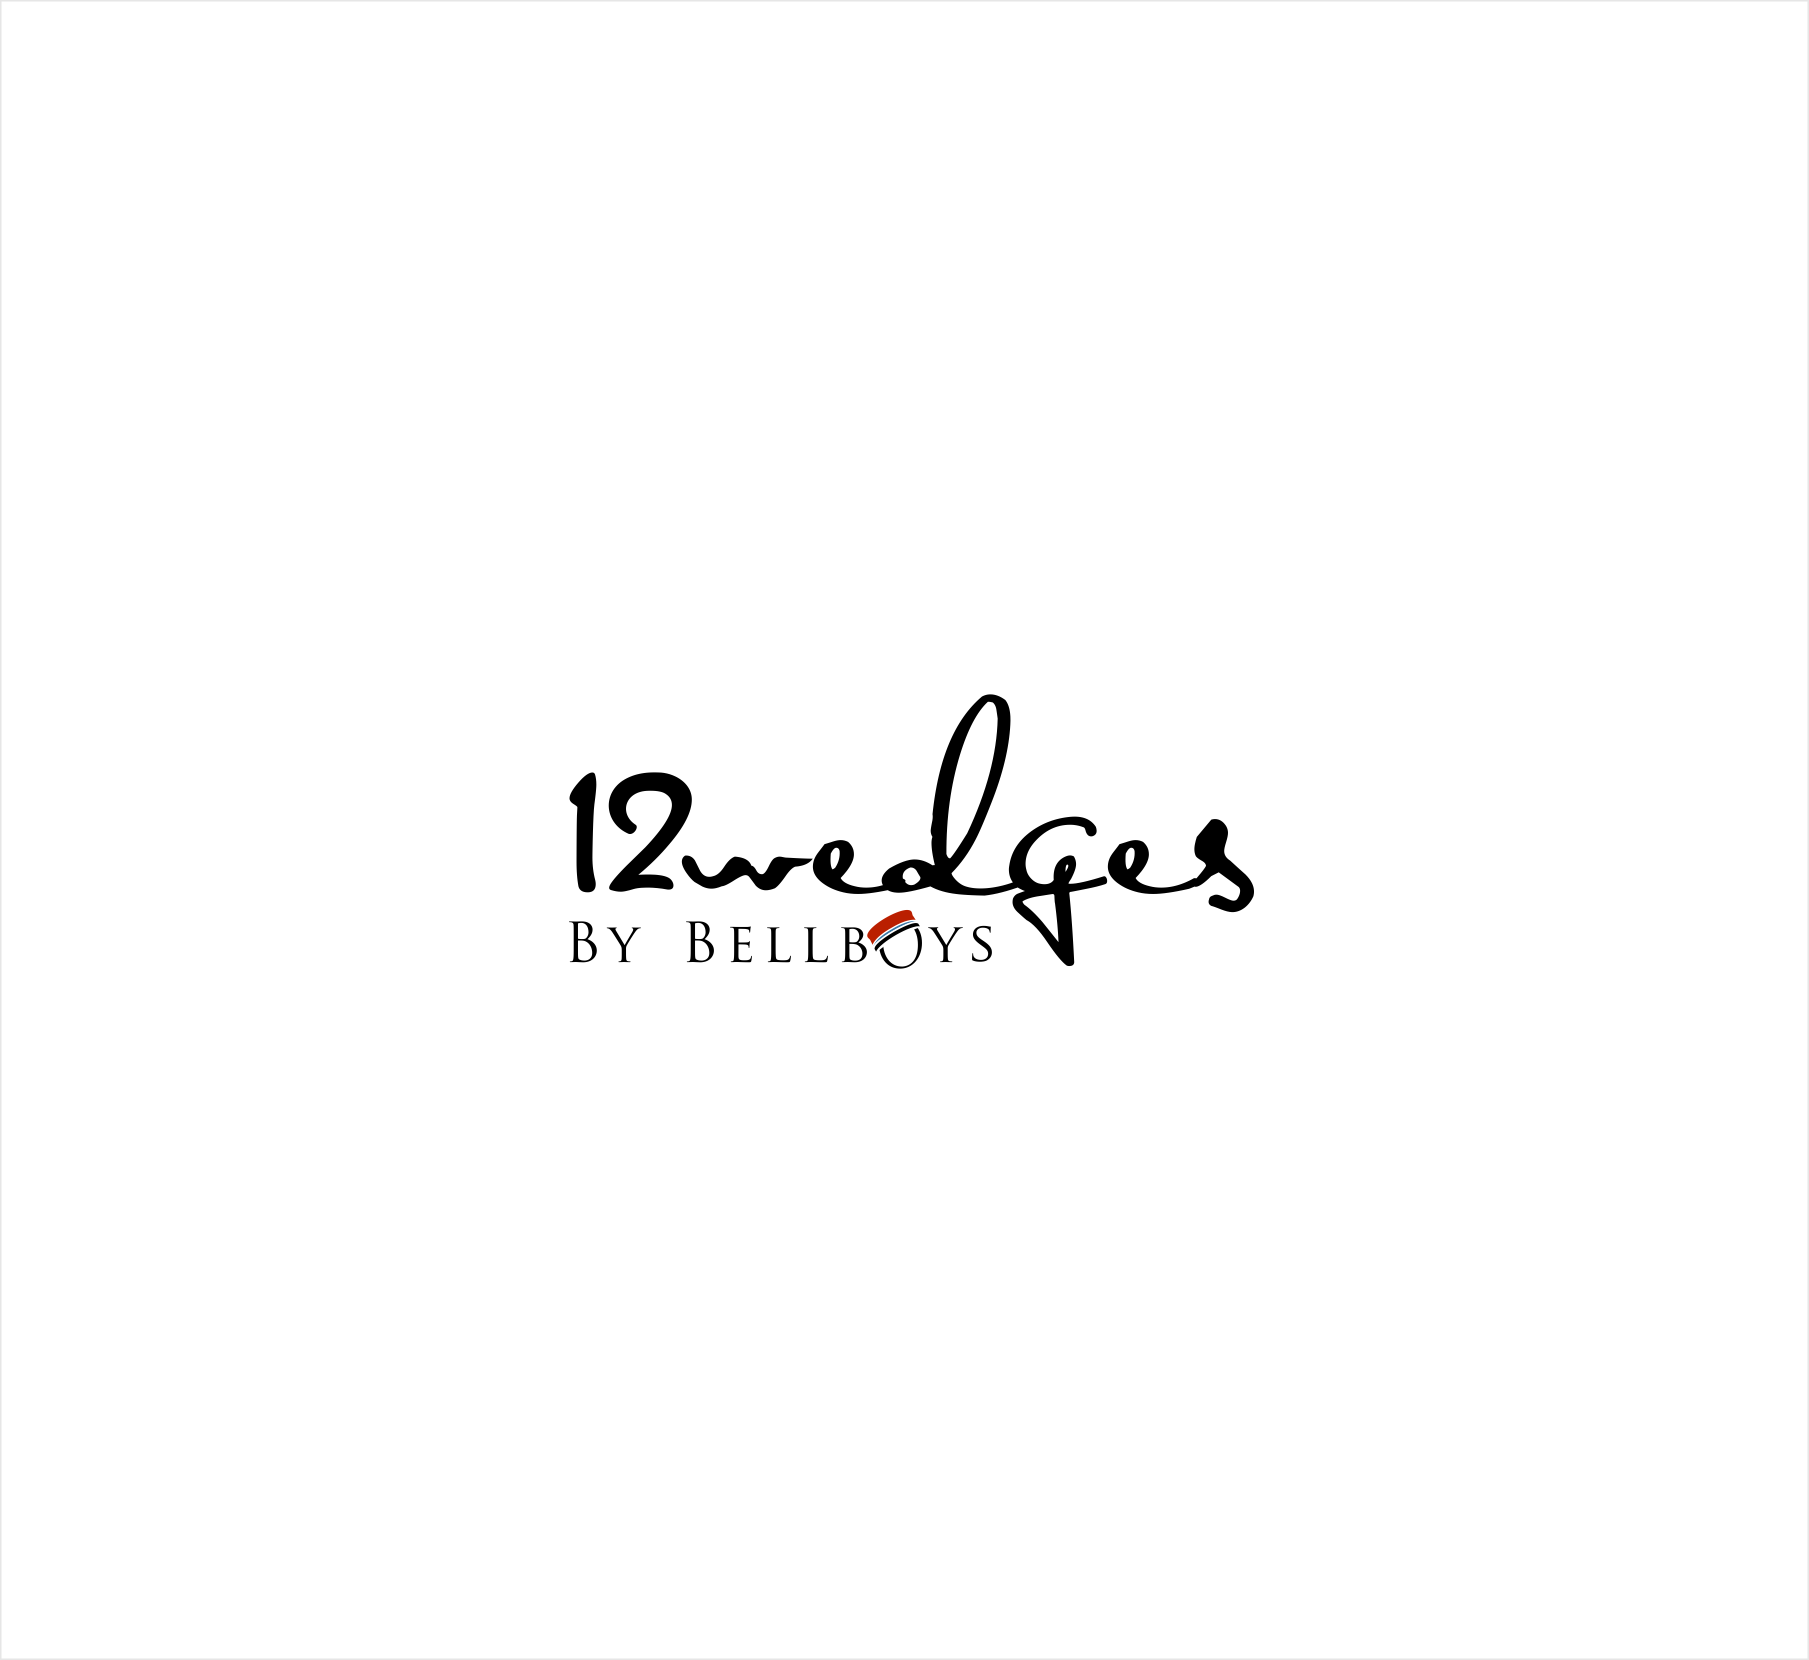 create a sophisticated brand logo for premium online cake business - 12wedges